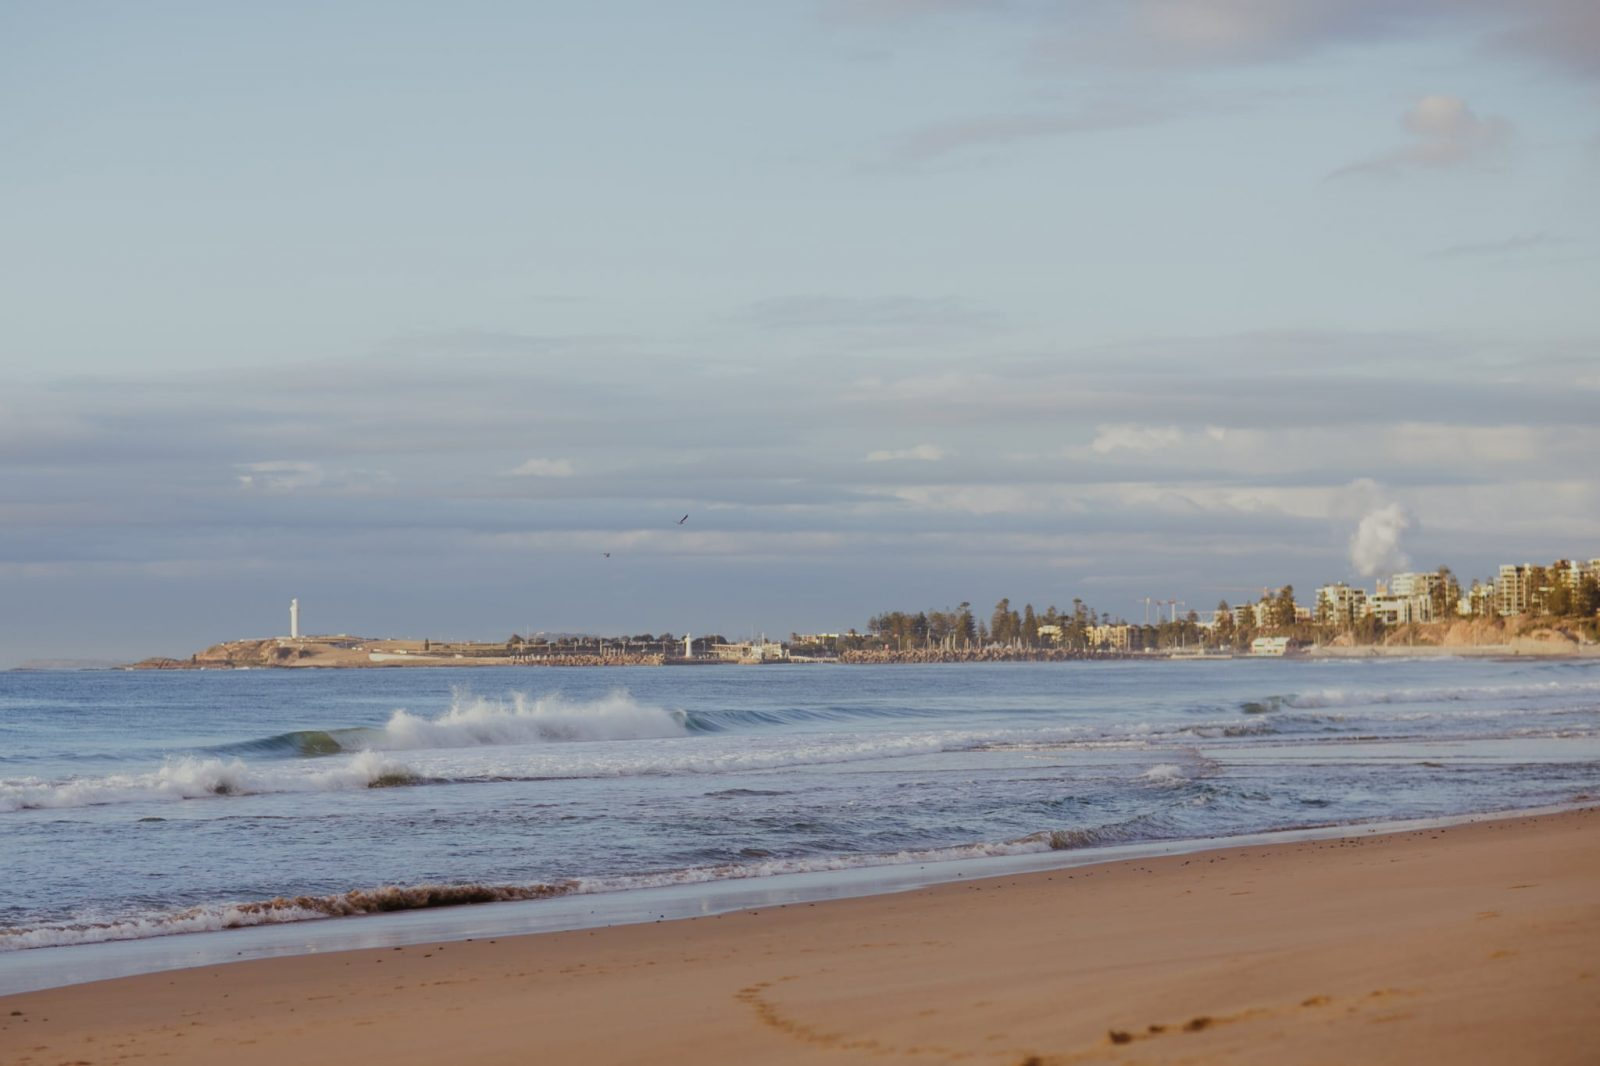 Photograph of the view of Wollongong and Port Kembla from Fairy Meadow on the South Coast of NSW